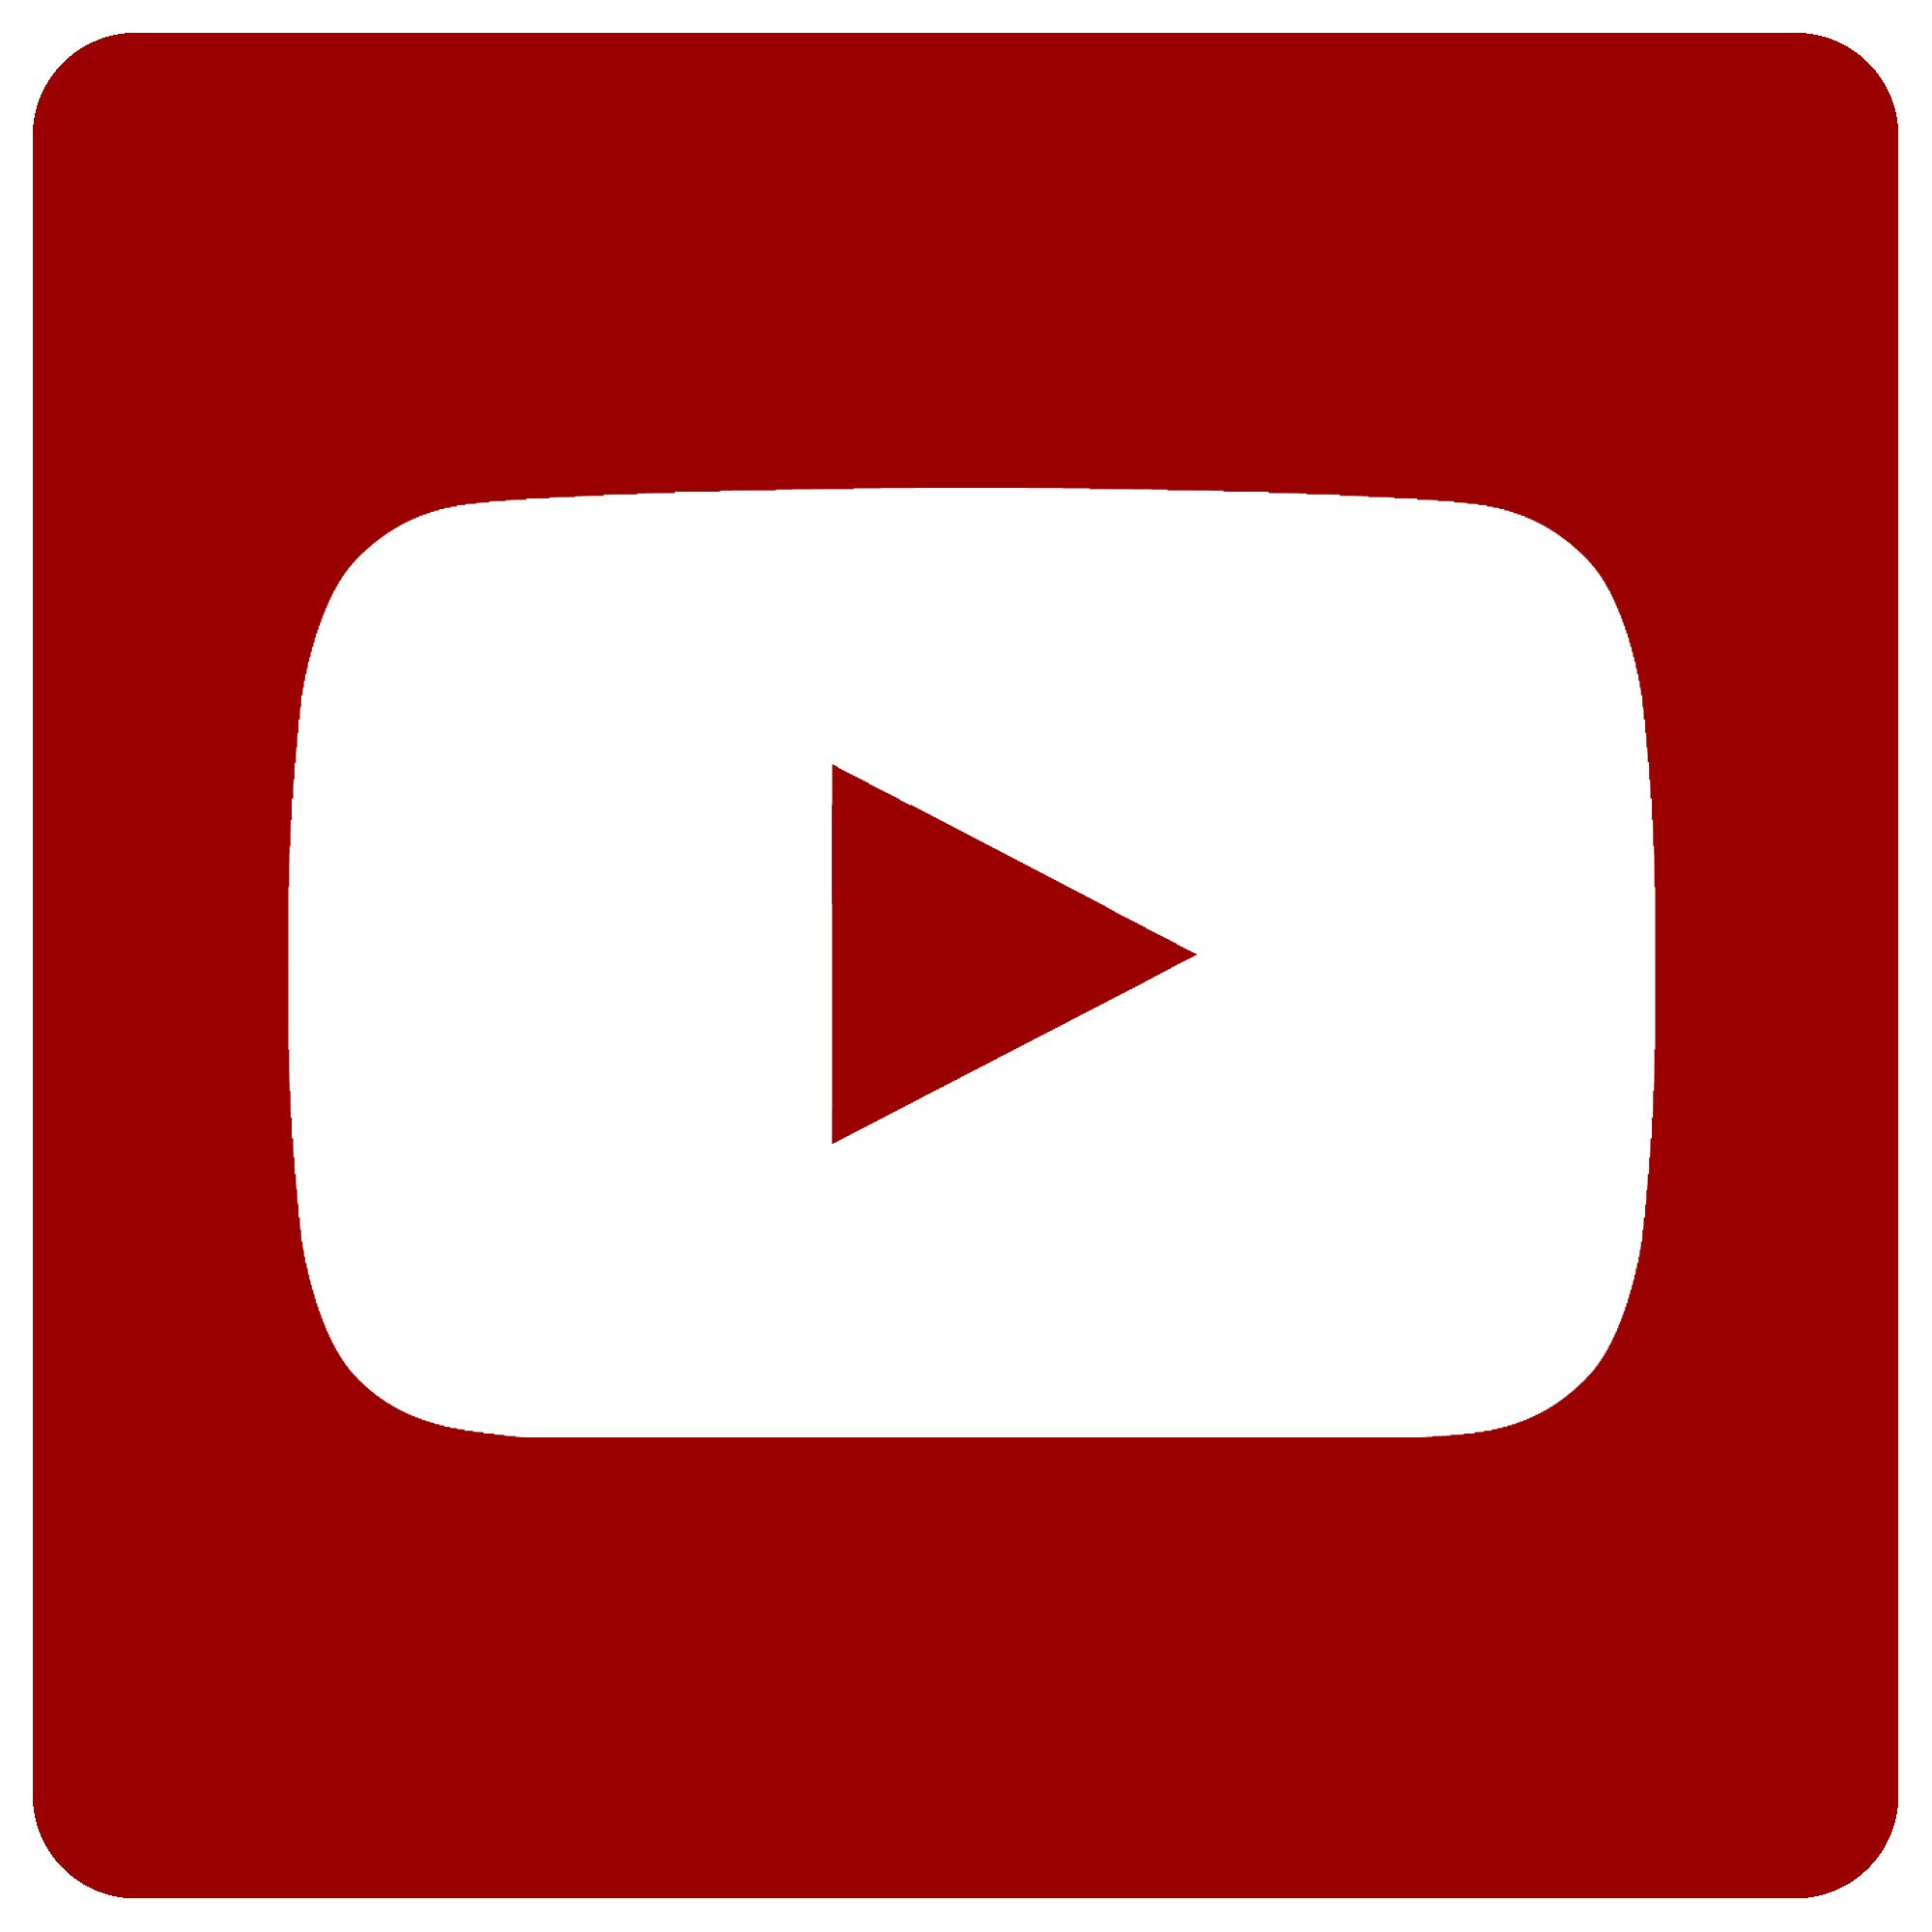 youtube logo youtube symbol meaning history and evolution